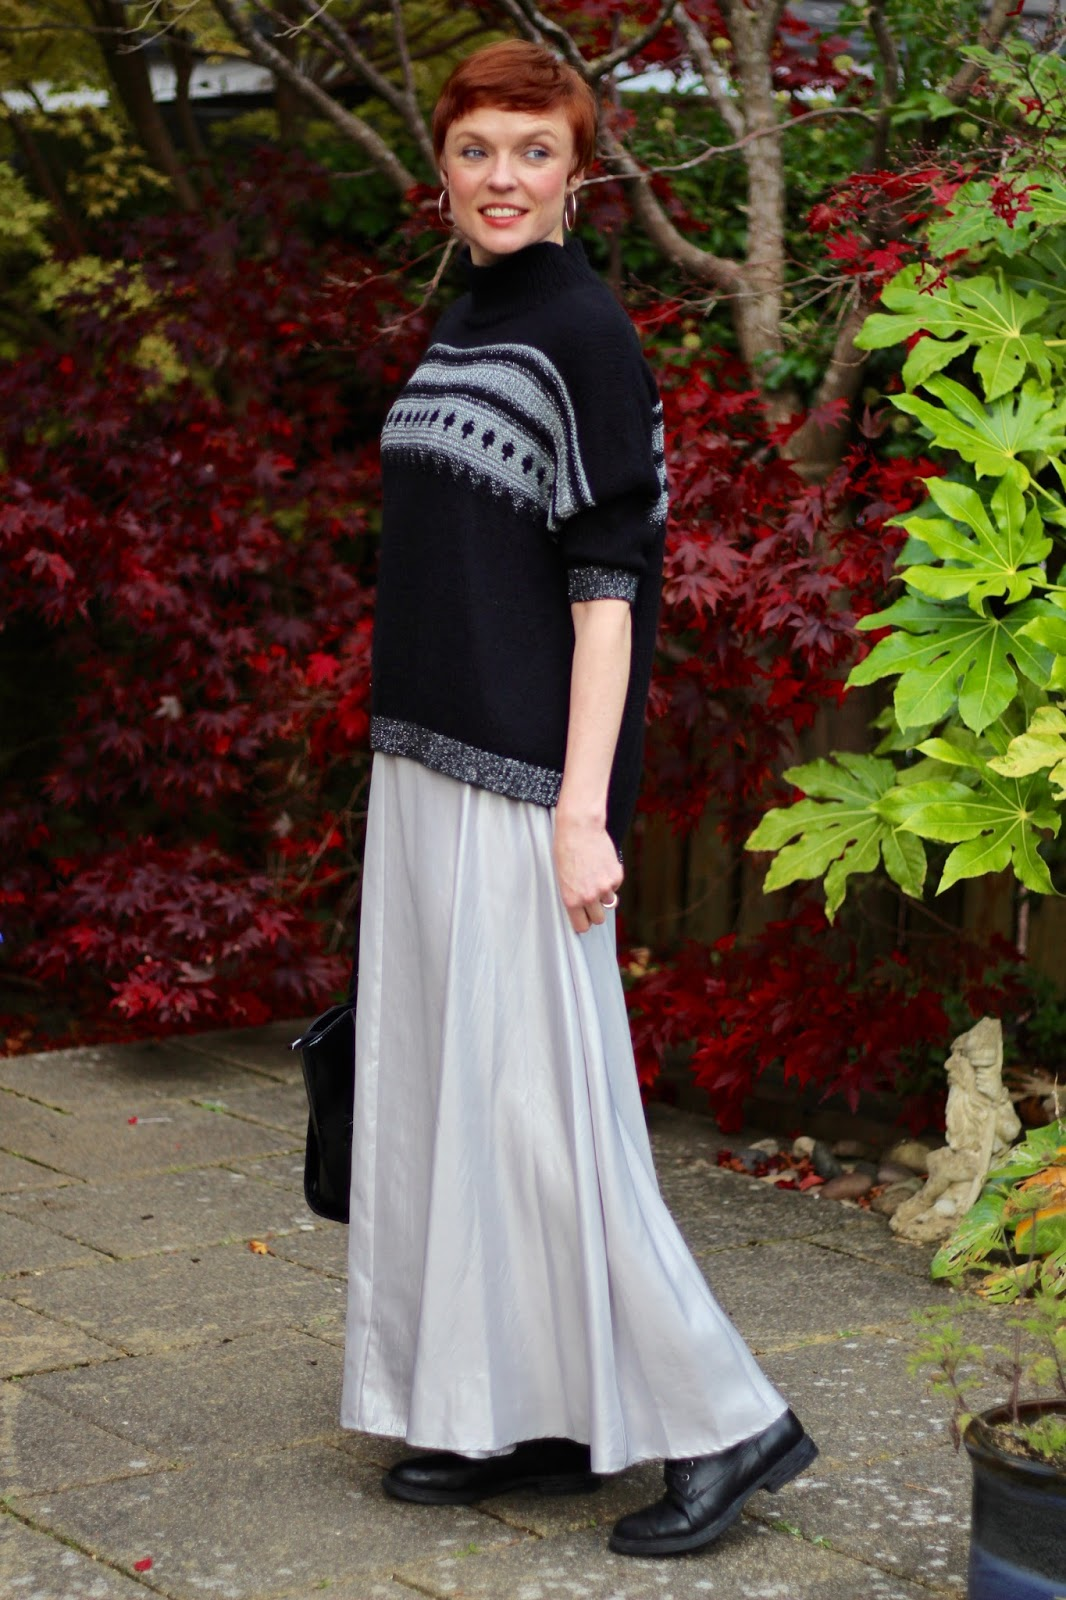 Silver Maxi Skirt & Black Boots | Autumn Style, over 40.